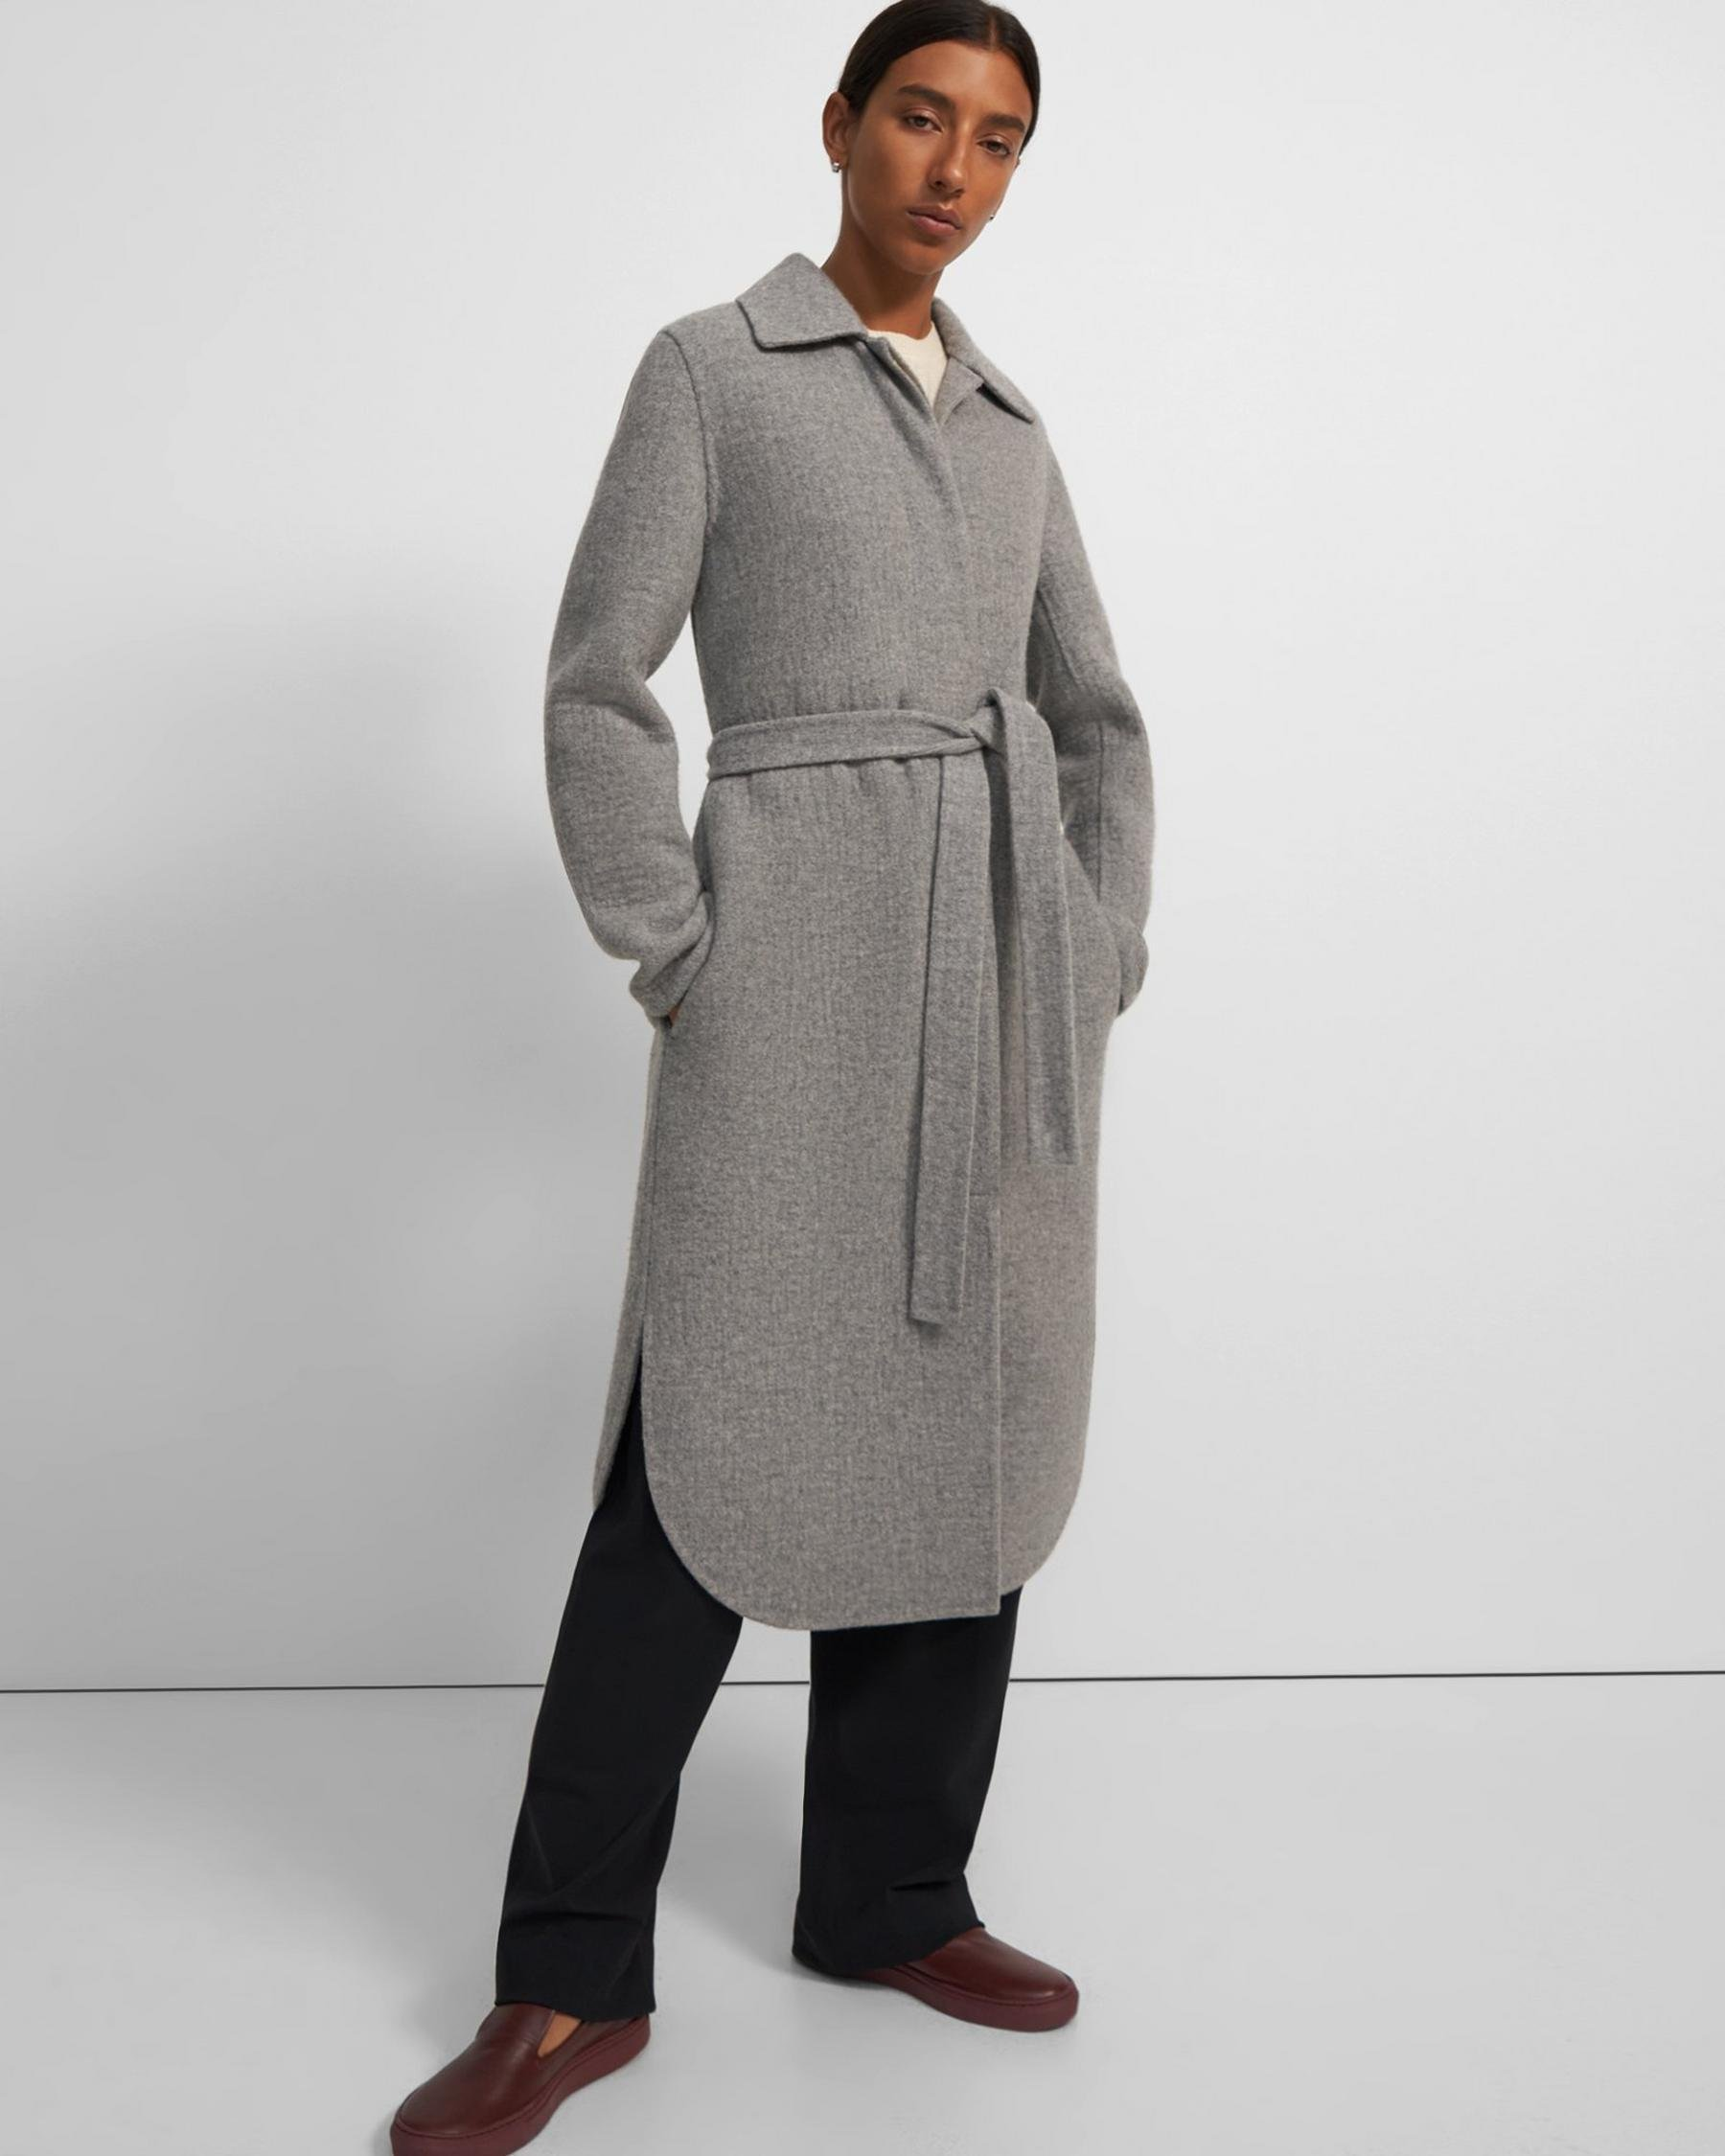 Shirttail Coat in Wool-Cashmere